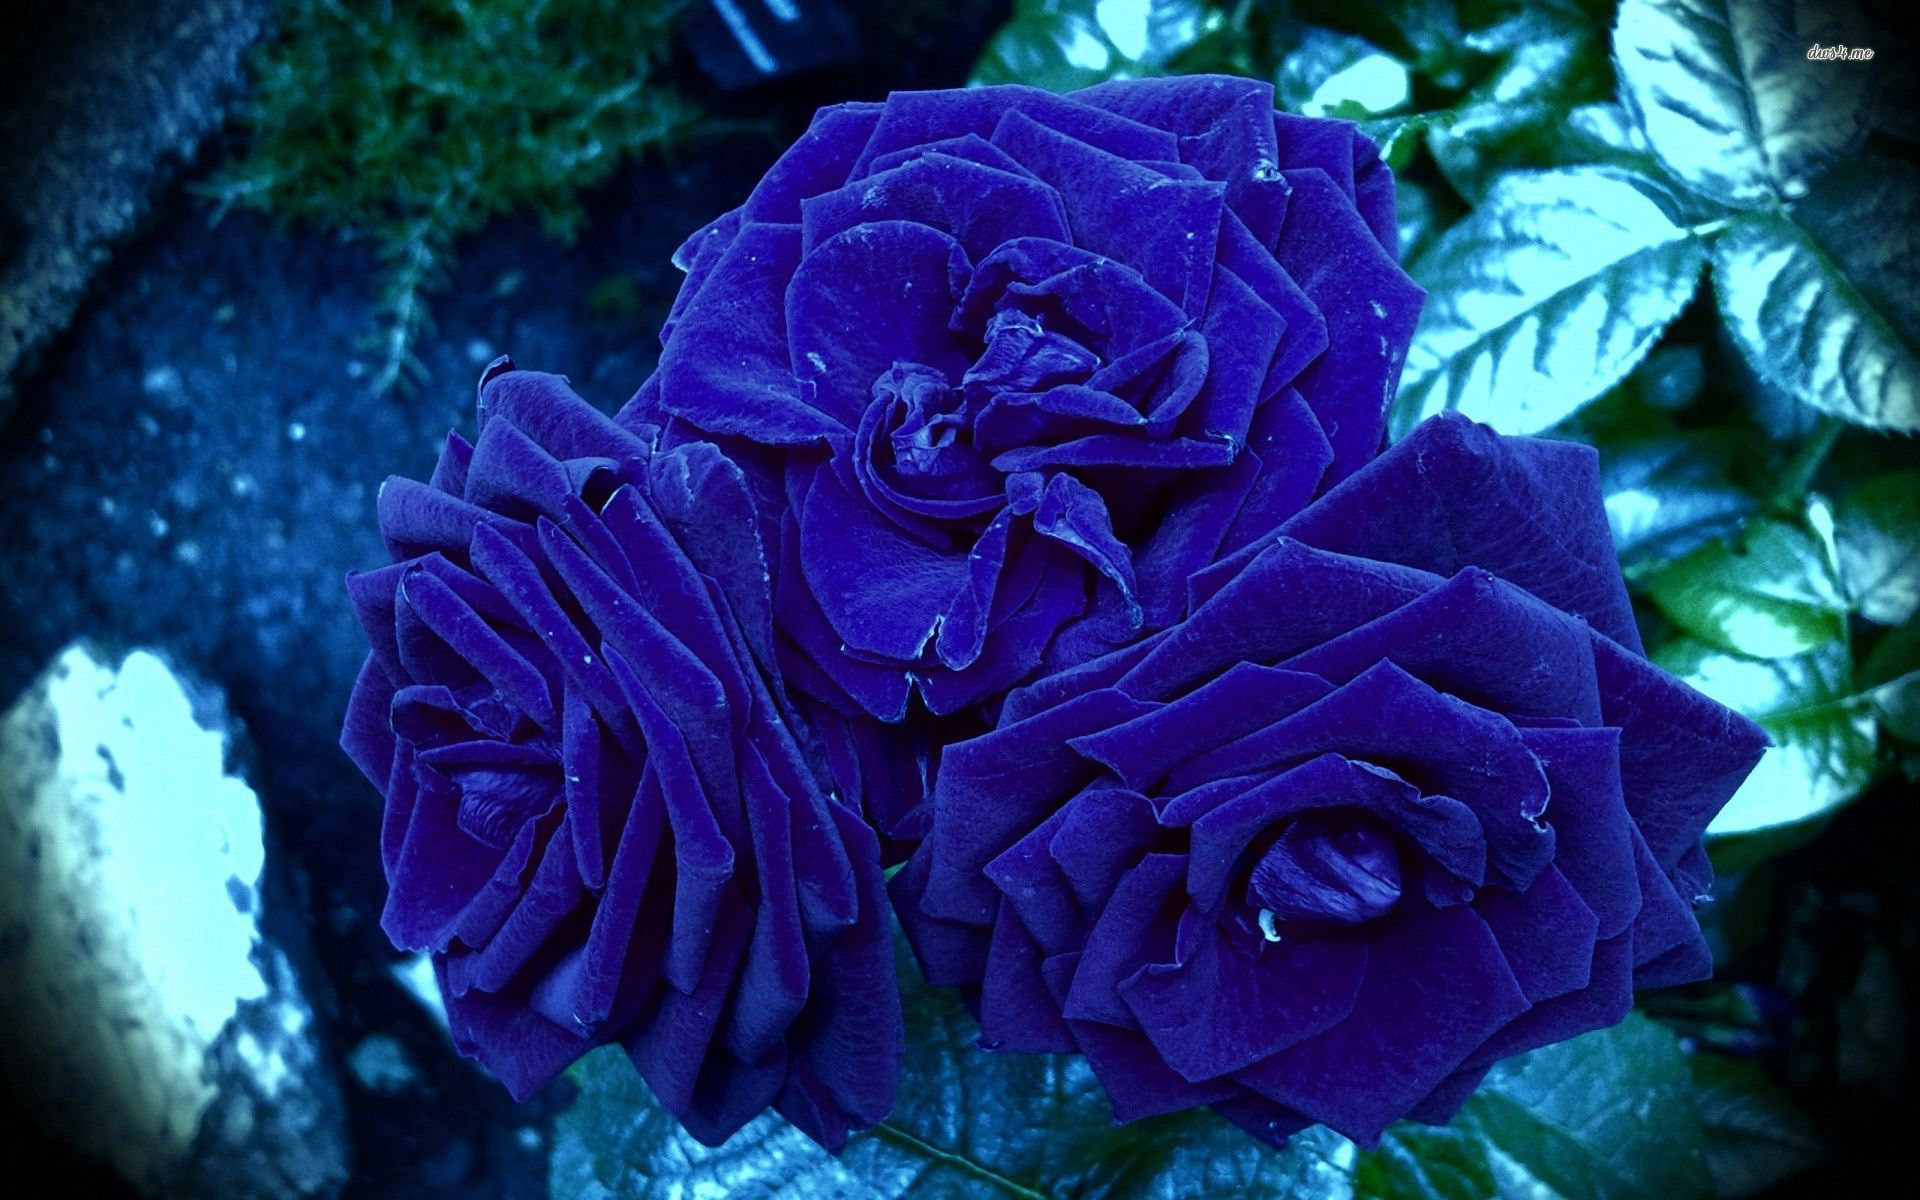 Res: 1920x1200, BLUE ROSE WALLPAPER